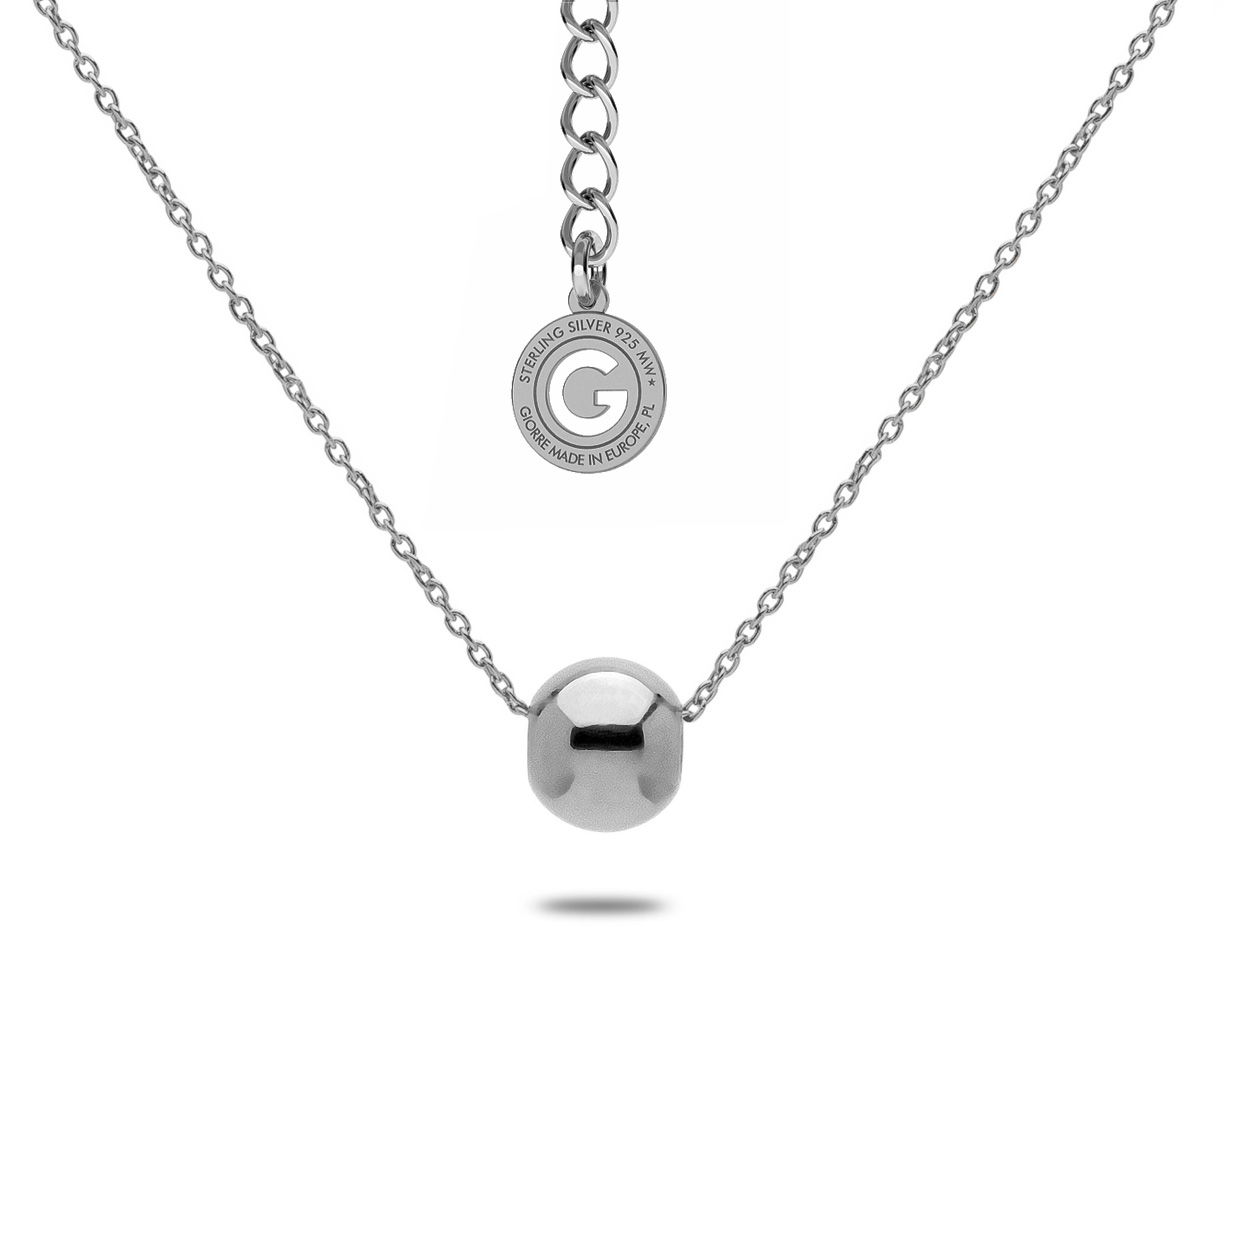 NECKLACE WITH BALL, STERLING SILVER 925